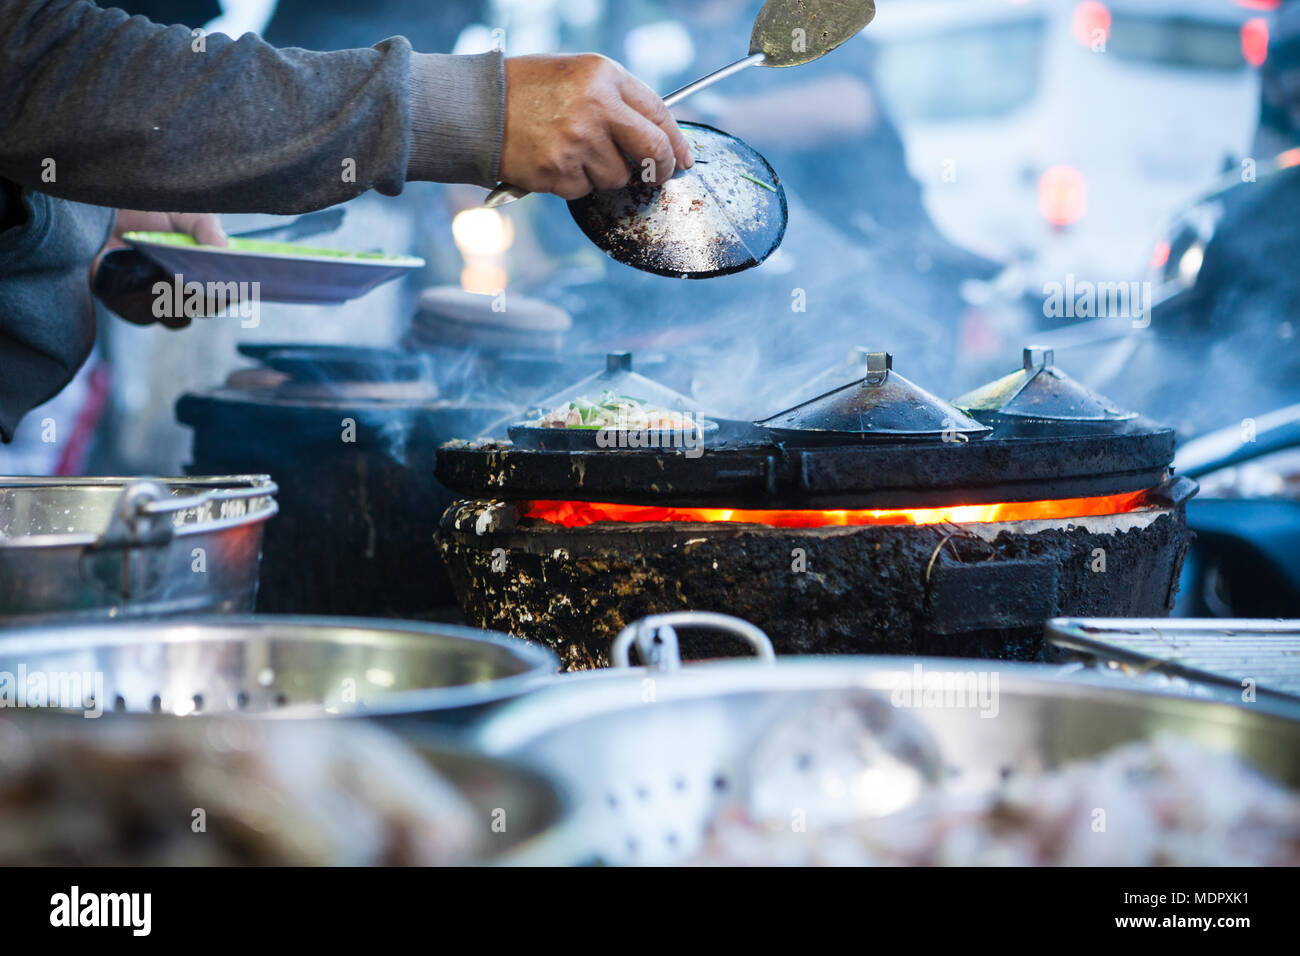 Nha Trang, Vietnam - march 16 2017: street food, cooking  banh xeo - savoury rice-flour pancakes with shrimp and bean sprouts - Stock Image